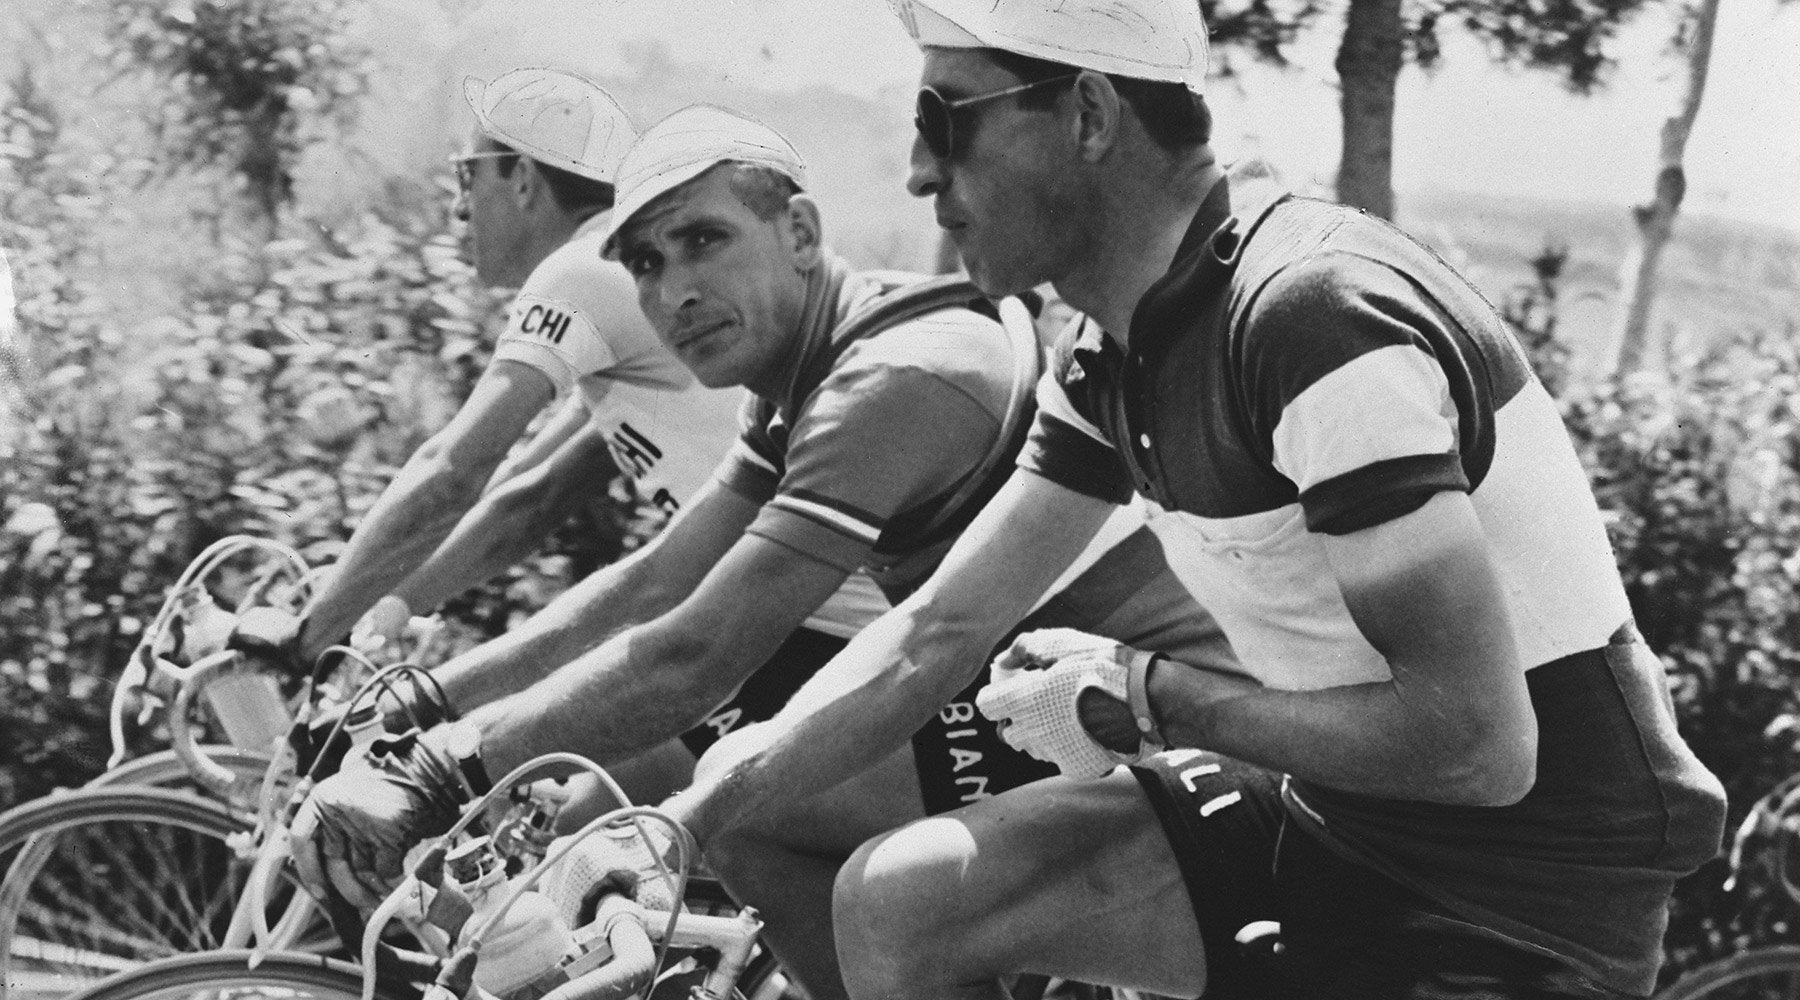 Unity: Be like Bartali